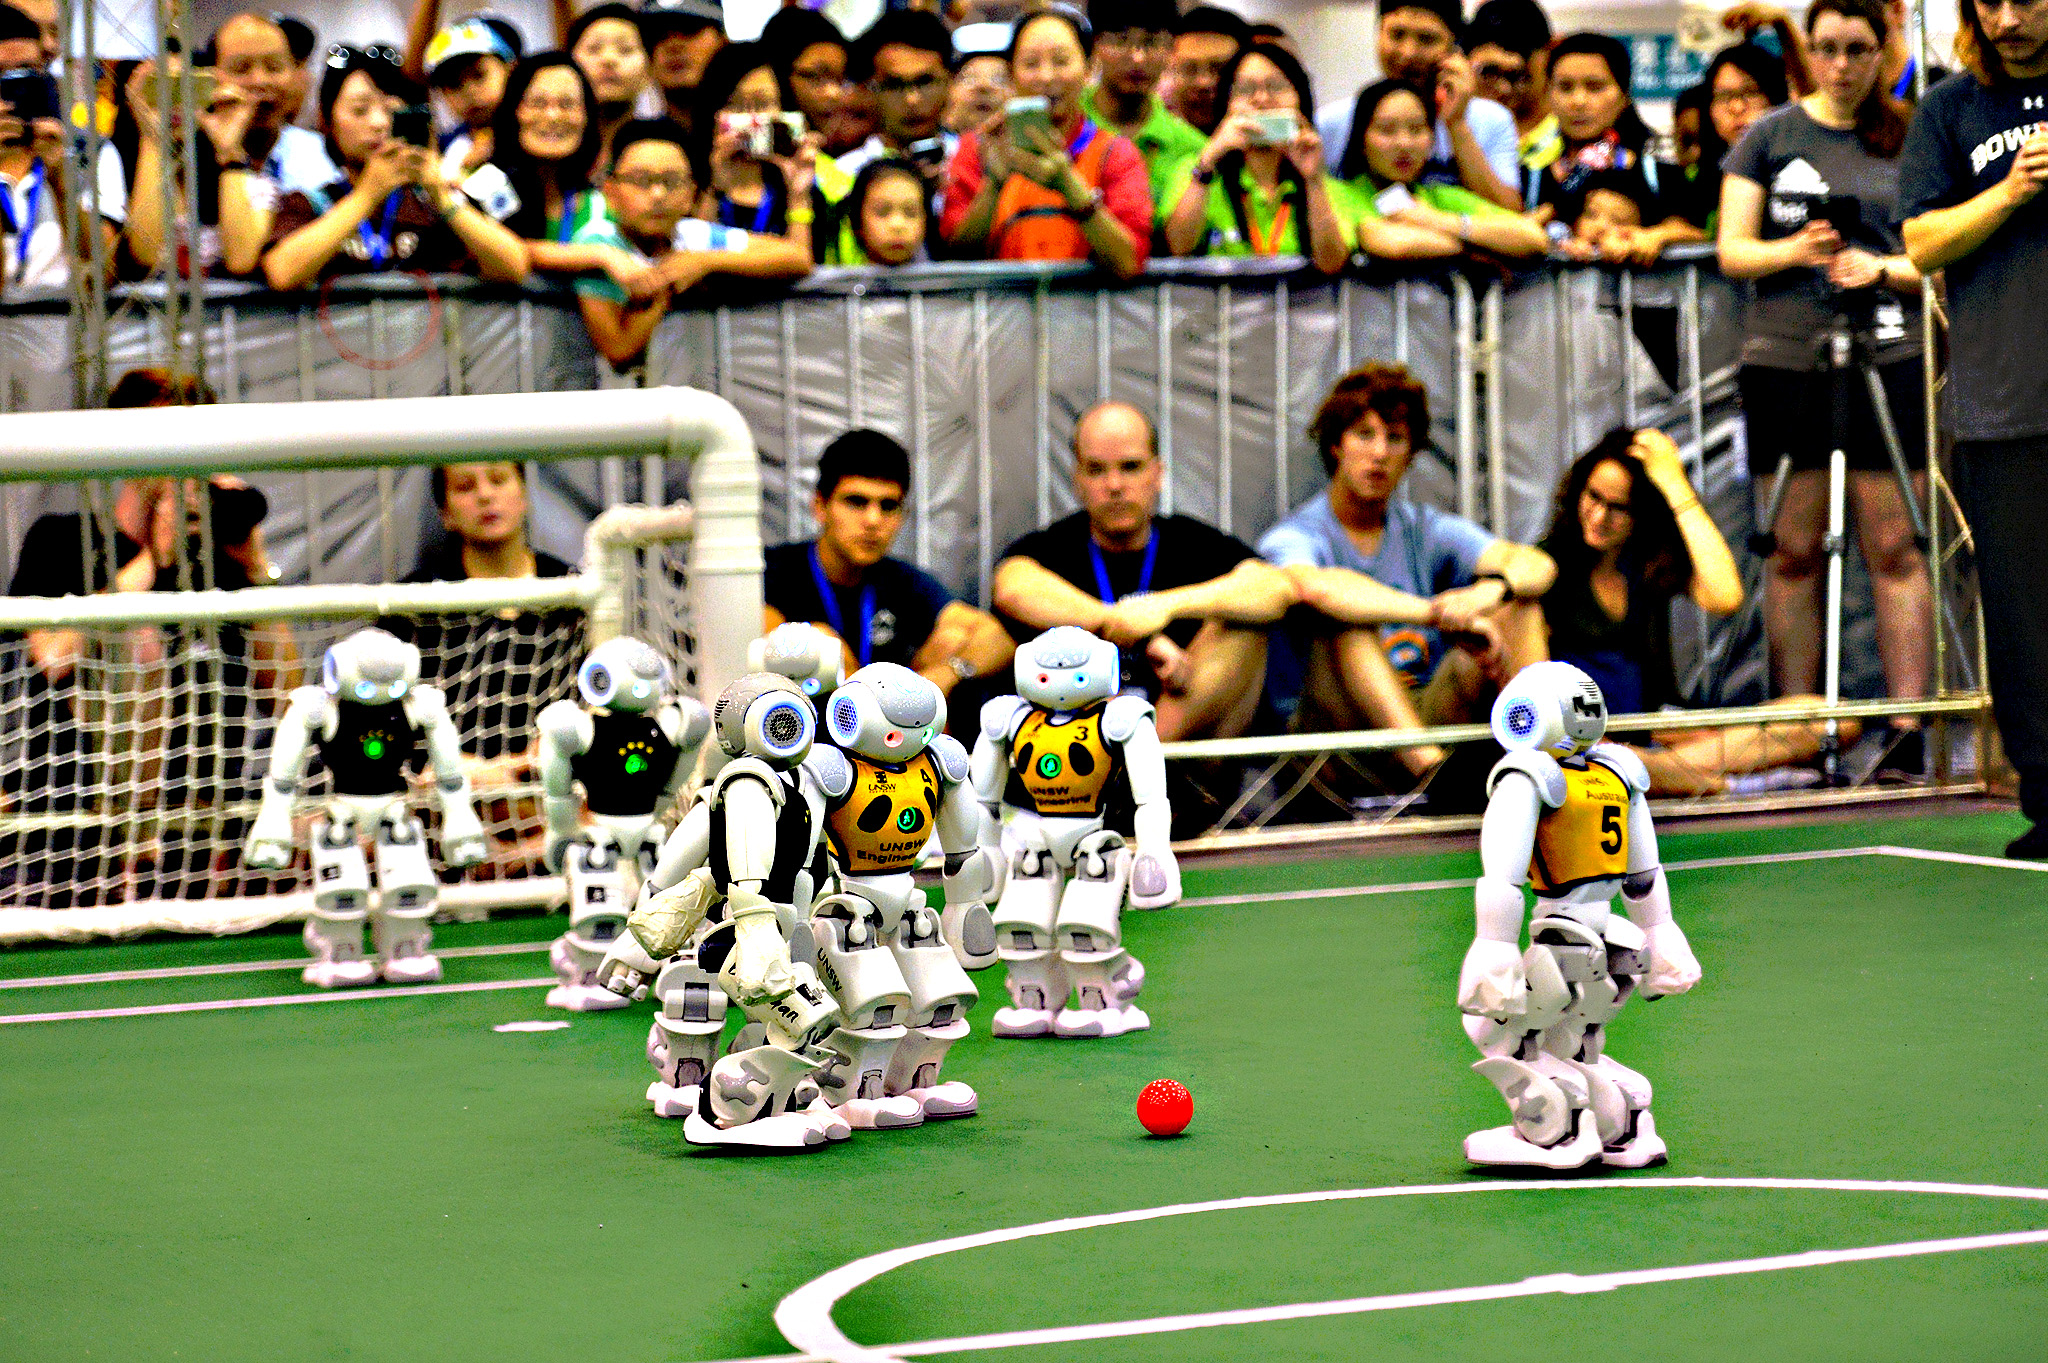 Robots compete in a football match during the RoboCup 2015 in Hefei, east China's Anhui province on Wednesday